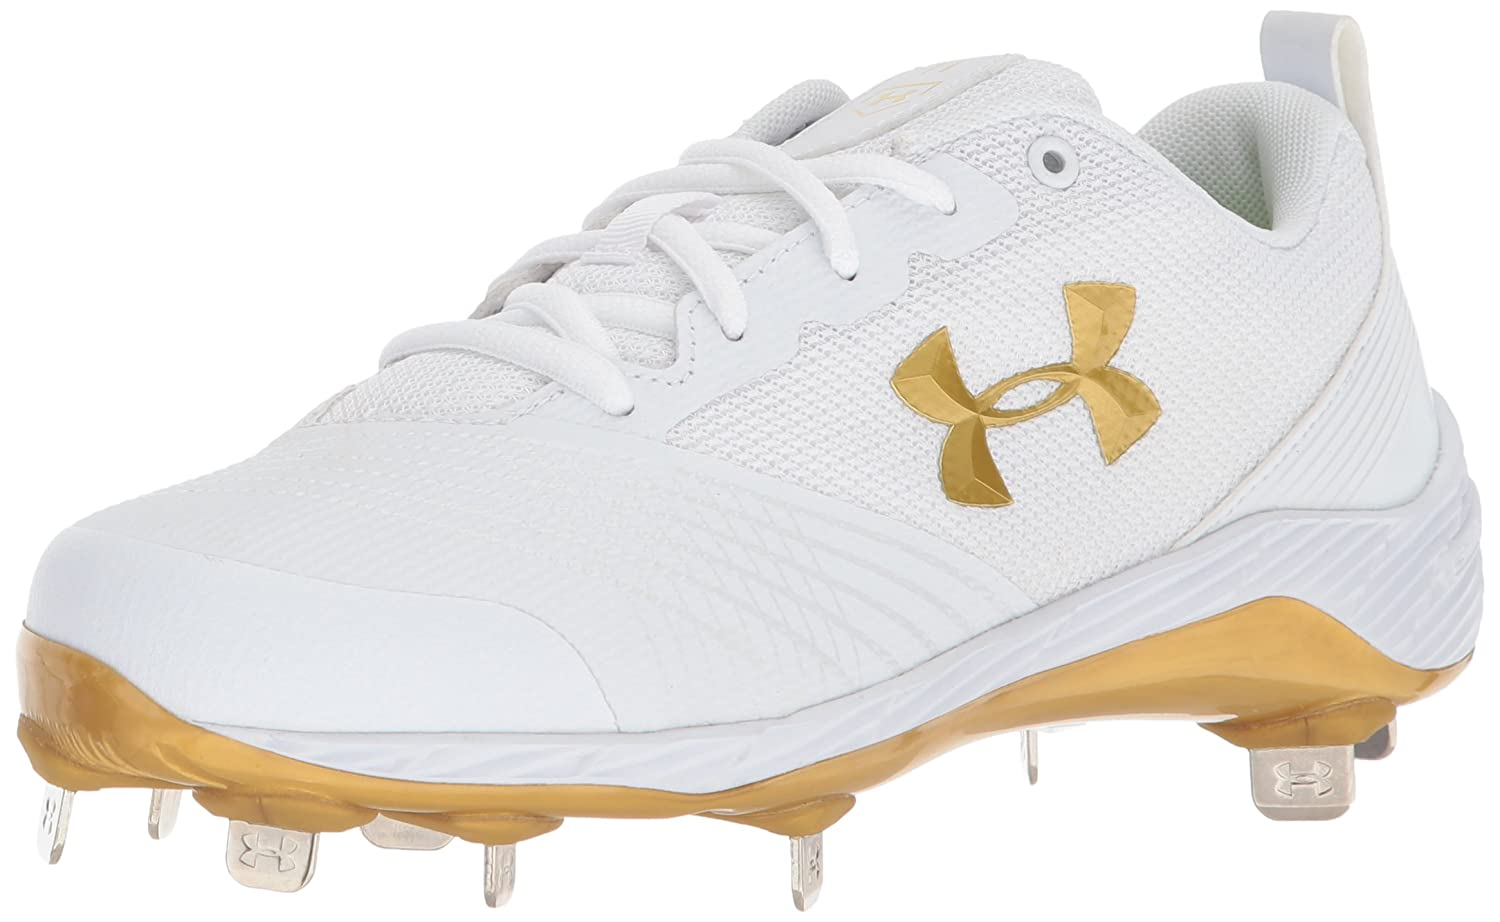 Under Armour Women's Glyde St Softball Shoe B06XCPXCQ8 10 M US|White (101)/Metallic Gold